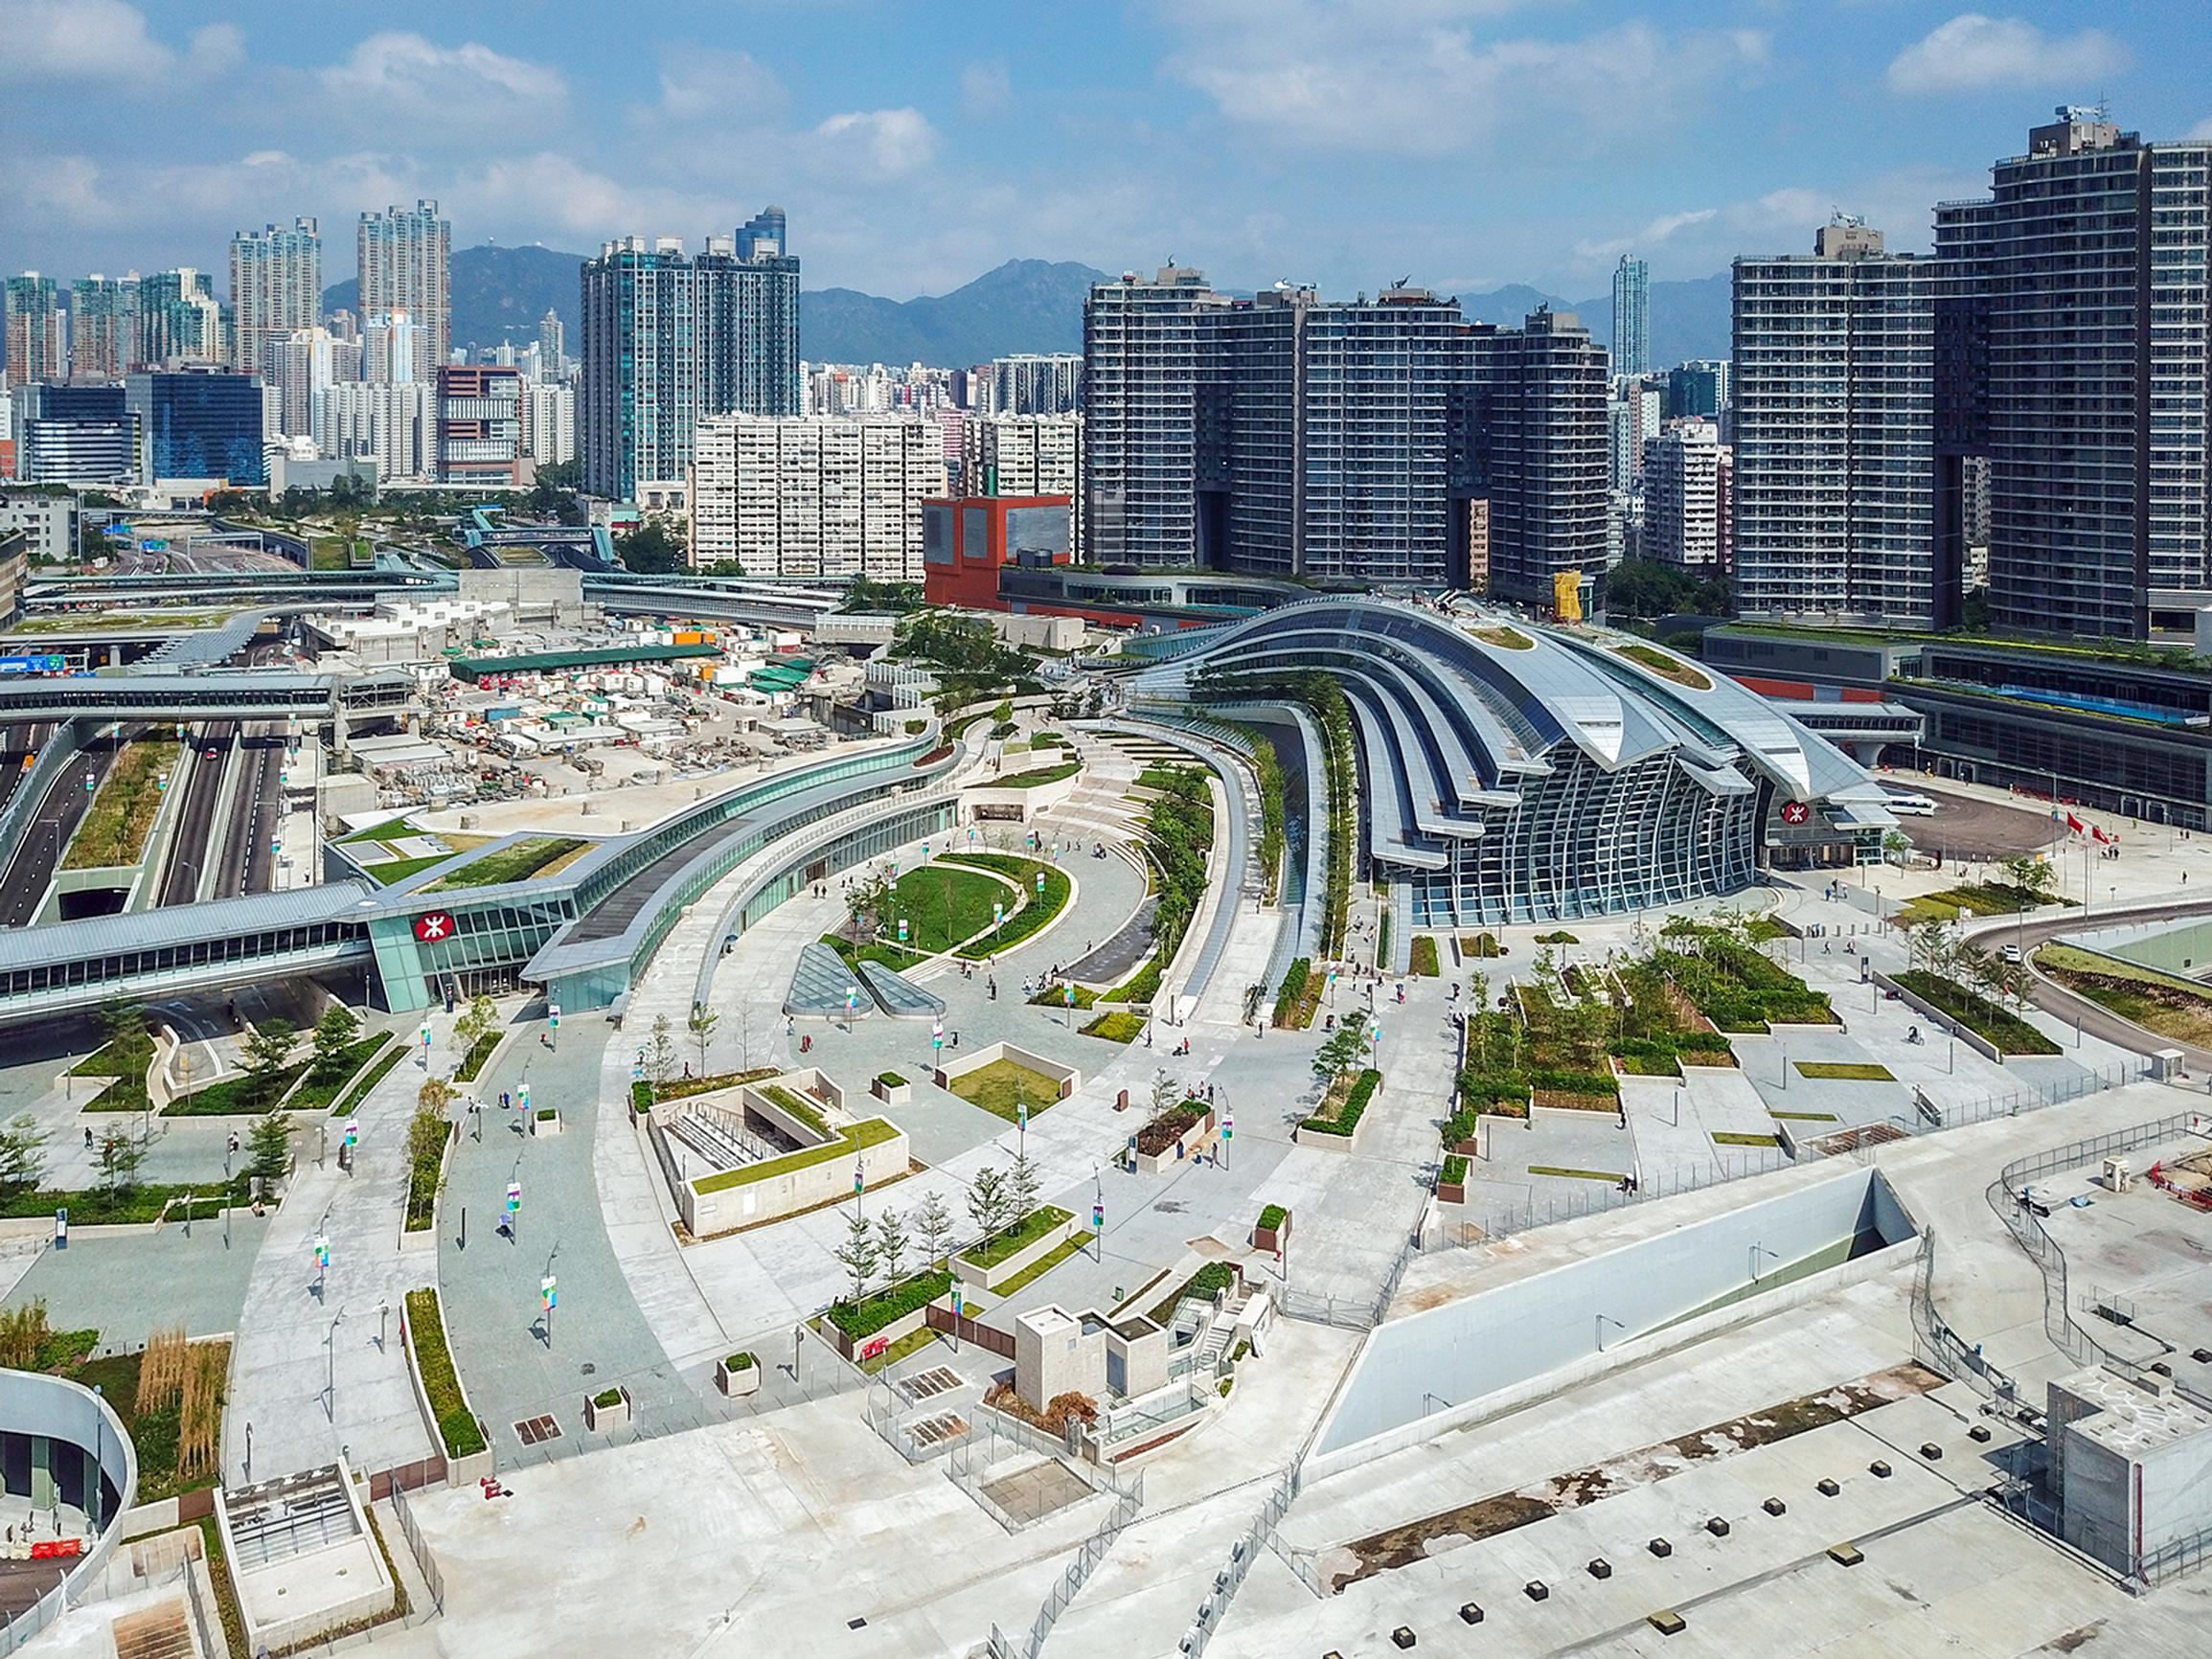 Hong Kong West Kowloon was constructed by MTR Corporation. Photo: Wpcpey